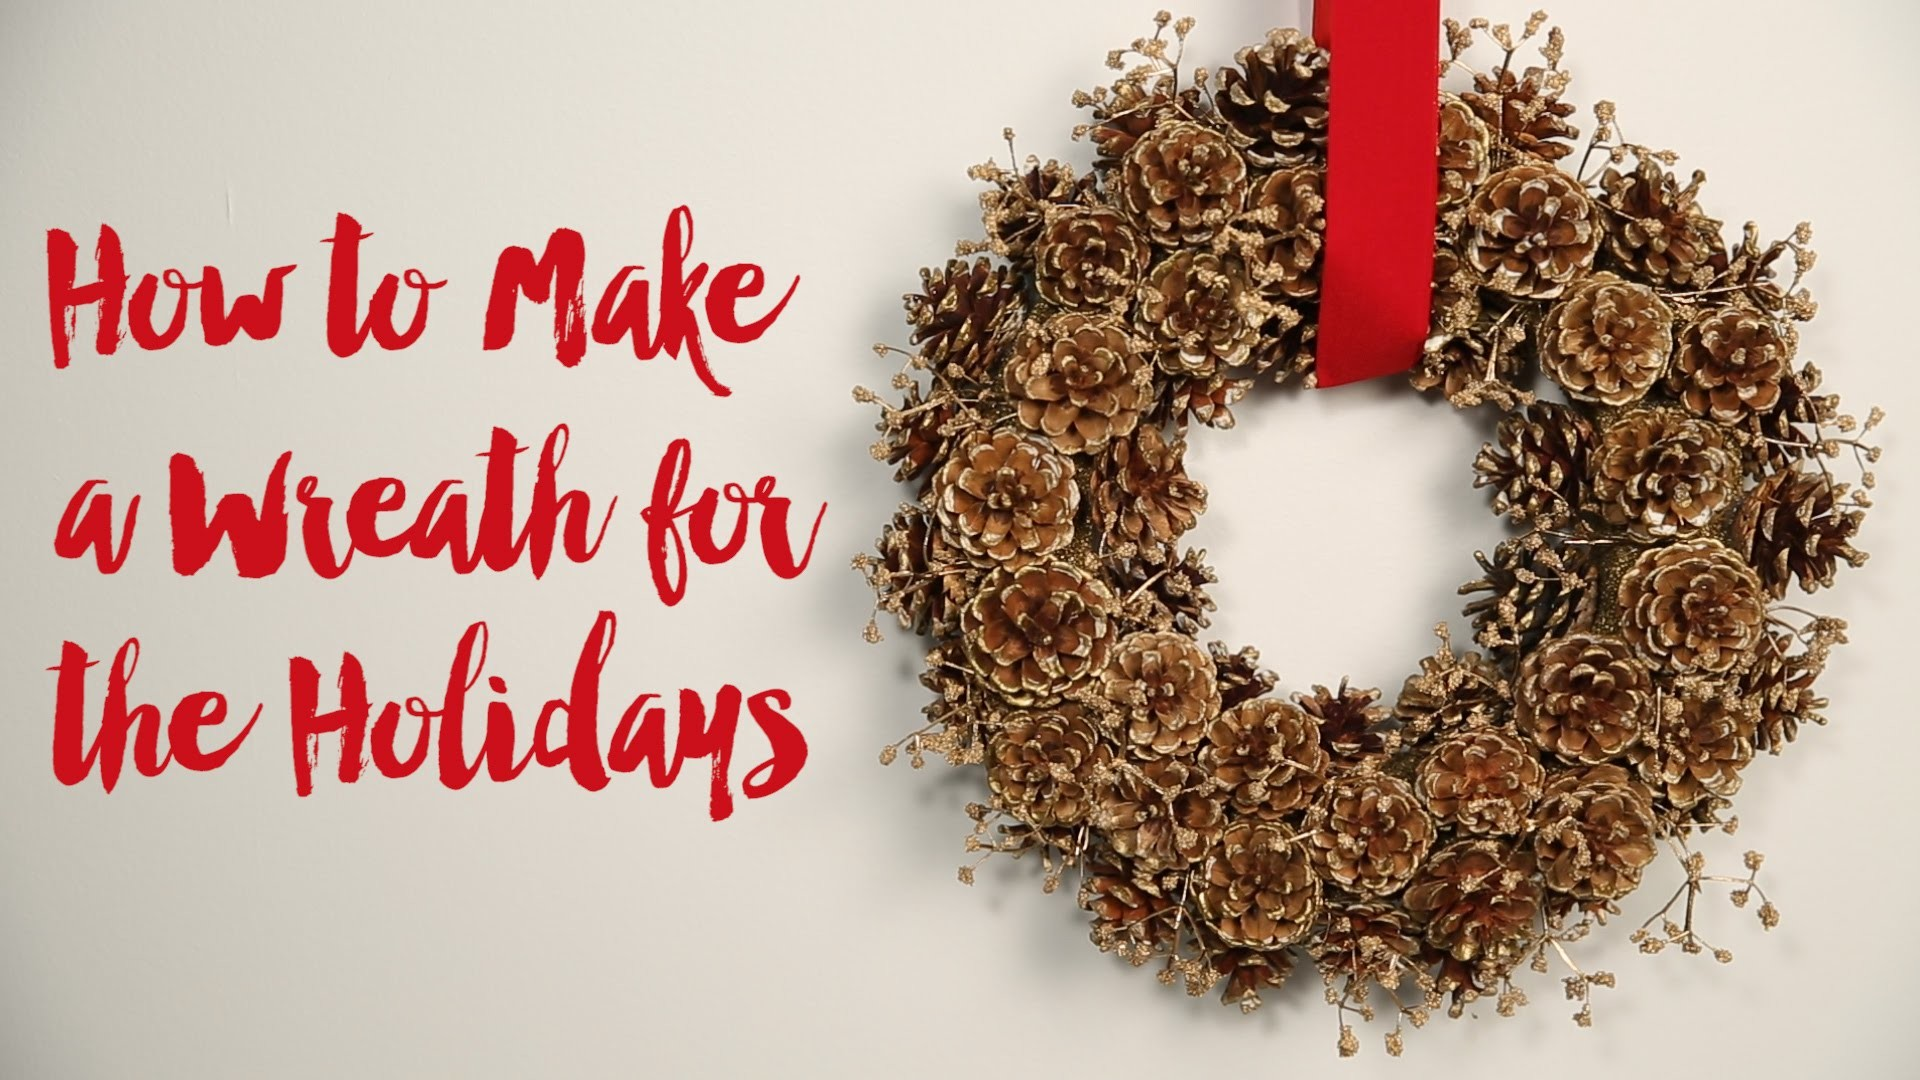 How to Make a Wreath for the Holidays